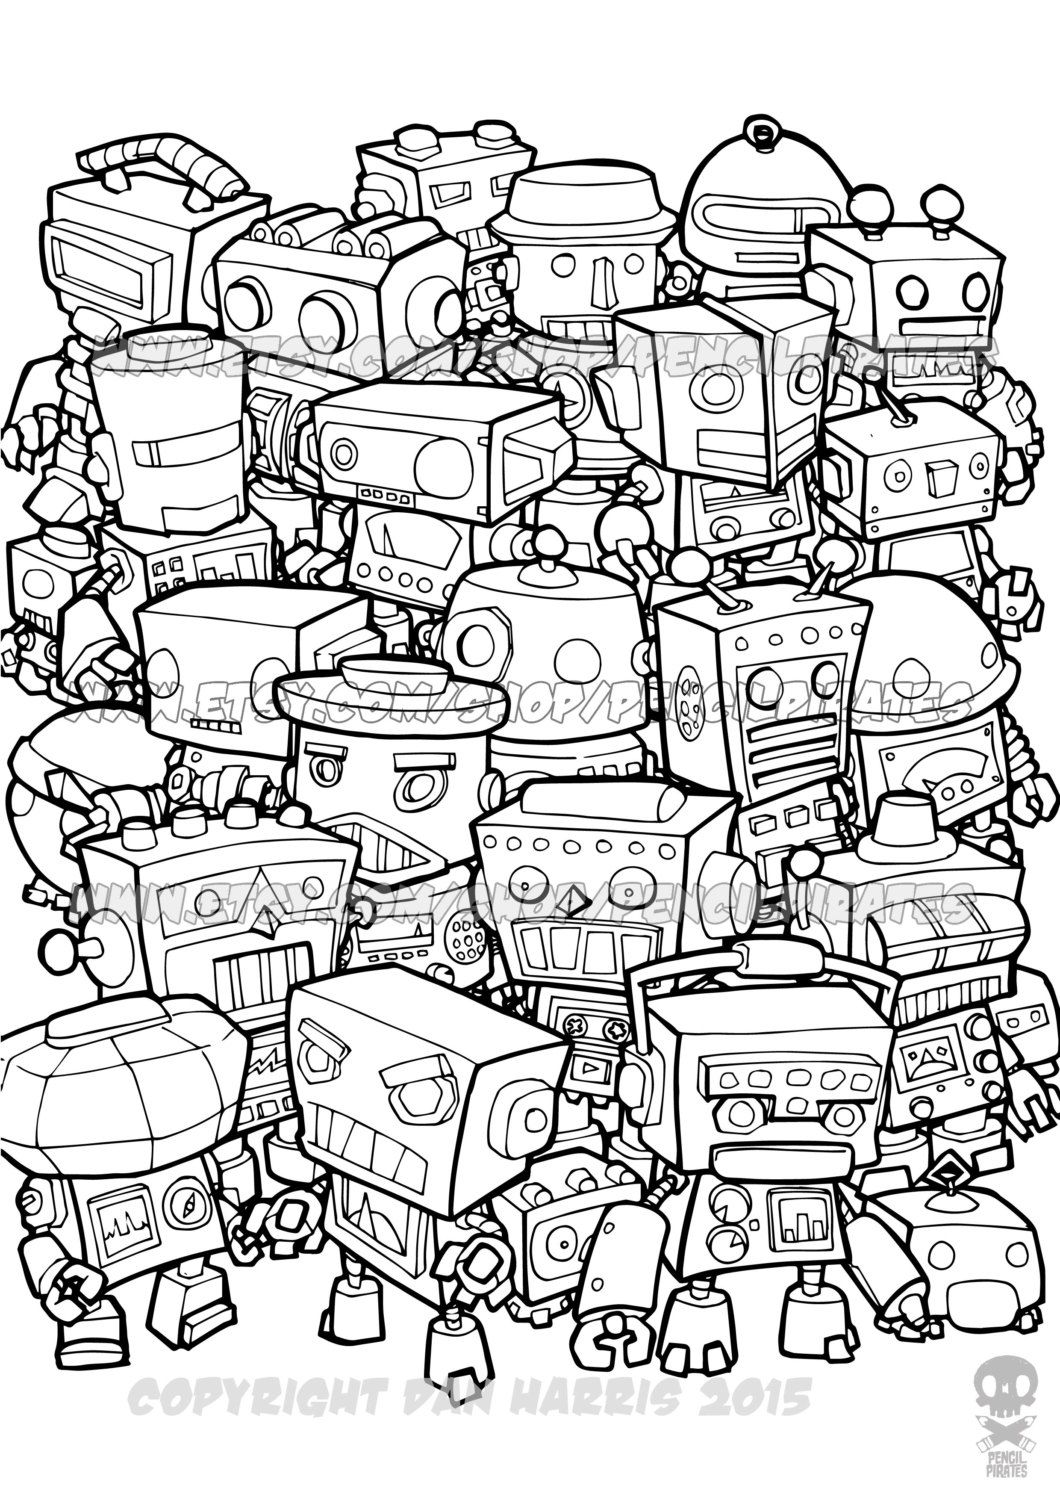 Retro Robot Colouring Page Adult Colouring Book Page One Page